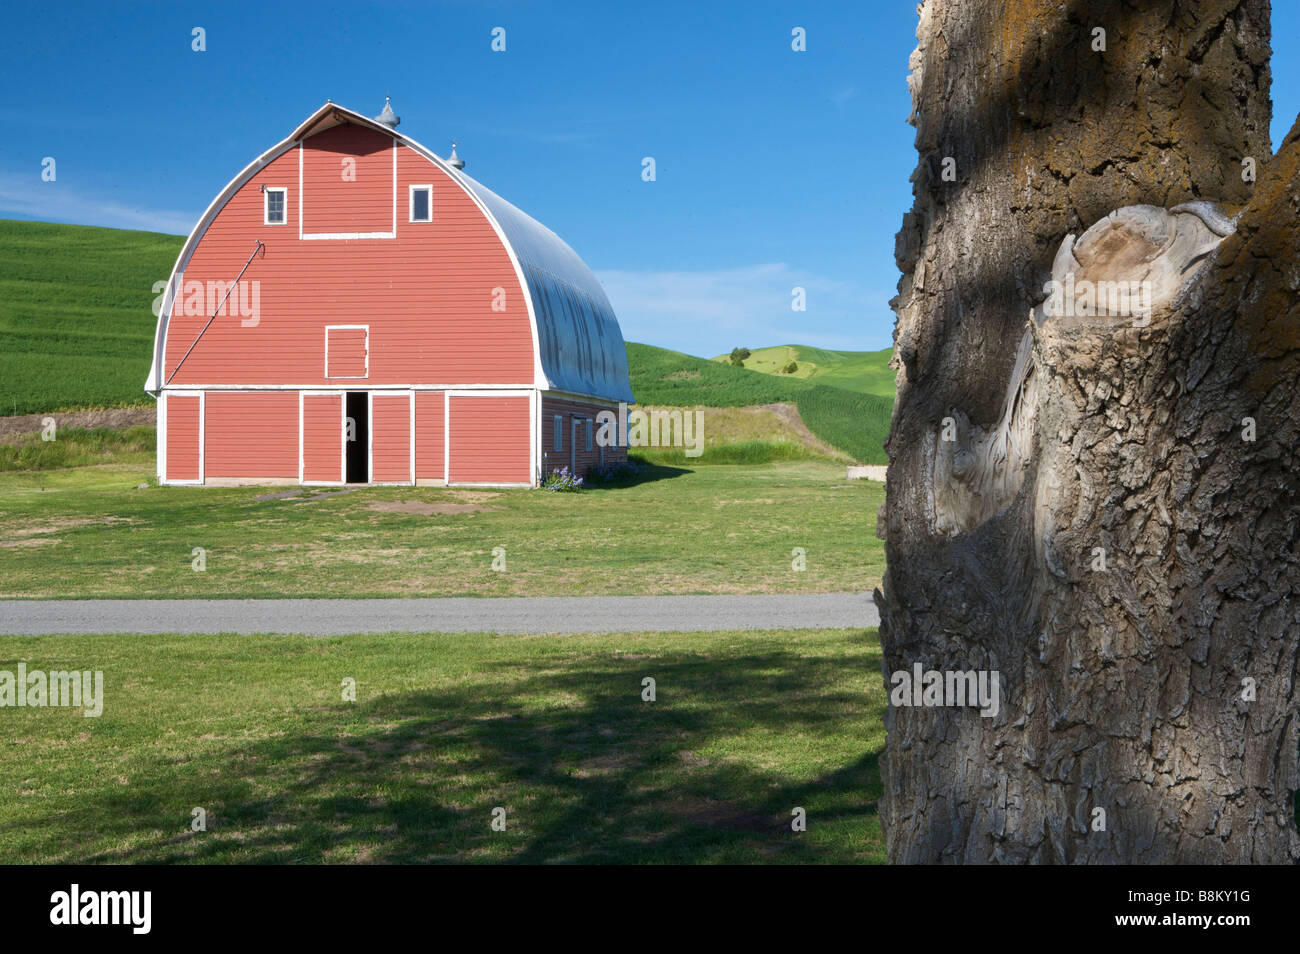 Red barn in rolling farm country of the Palouse area of eastern Washington state - Stock Image